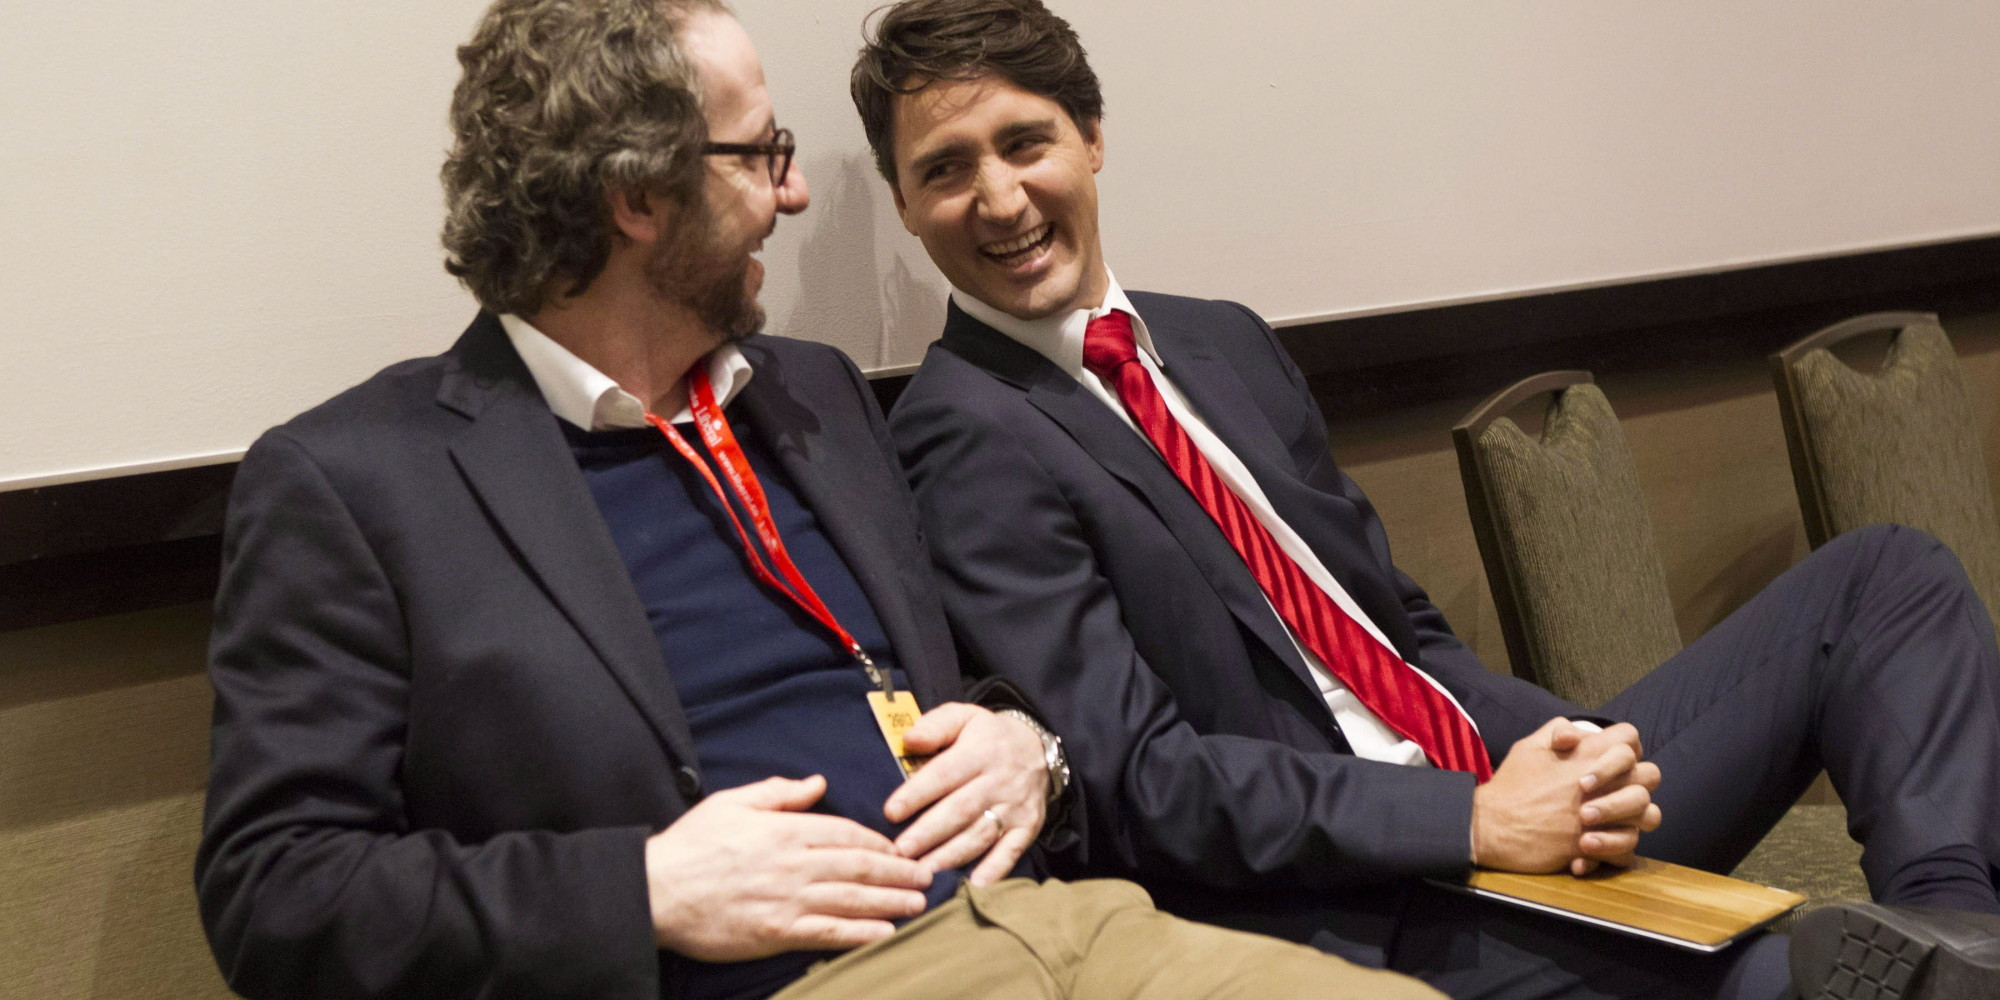 Justin Trudeaus Inner Circle A Reflection Of The Leader